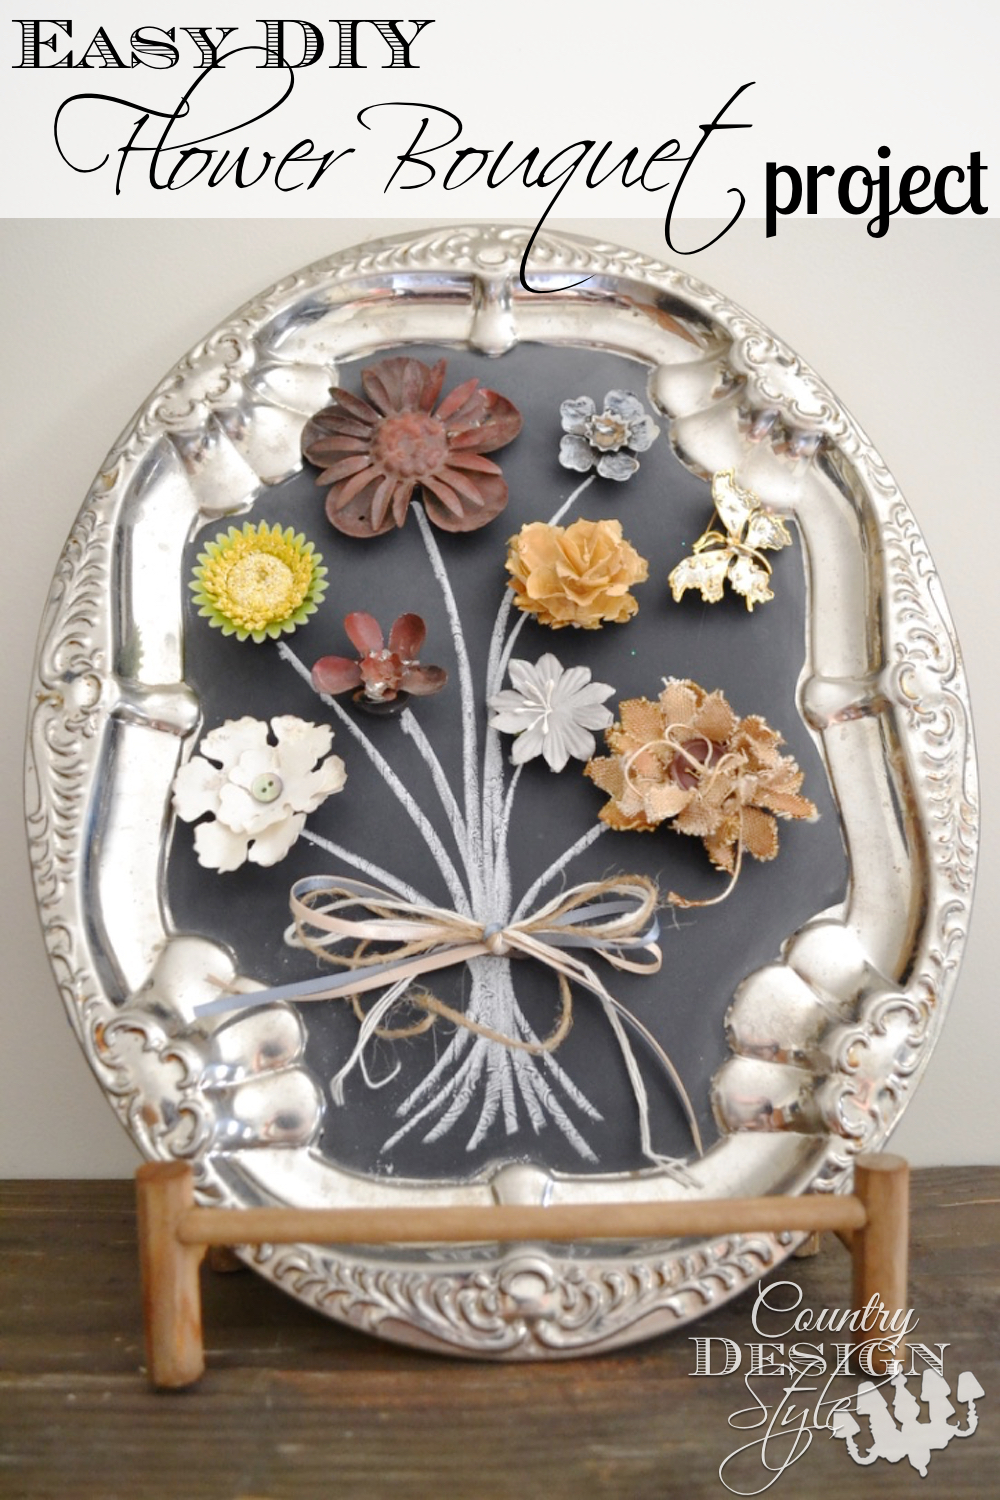 Easy DIY Flower Bouquet Project using magnets on metal tray painted with chalkboard paint. Just draw the stems! Country Design Style